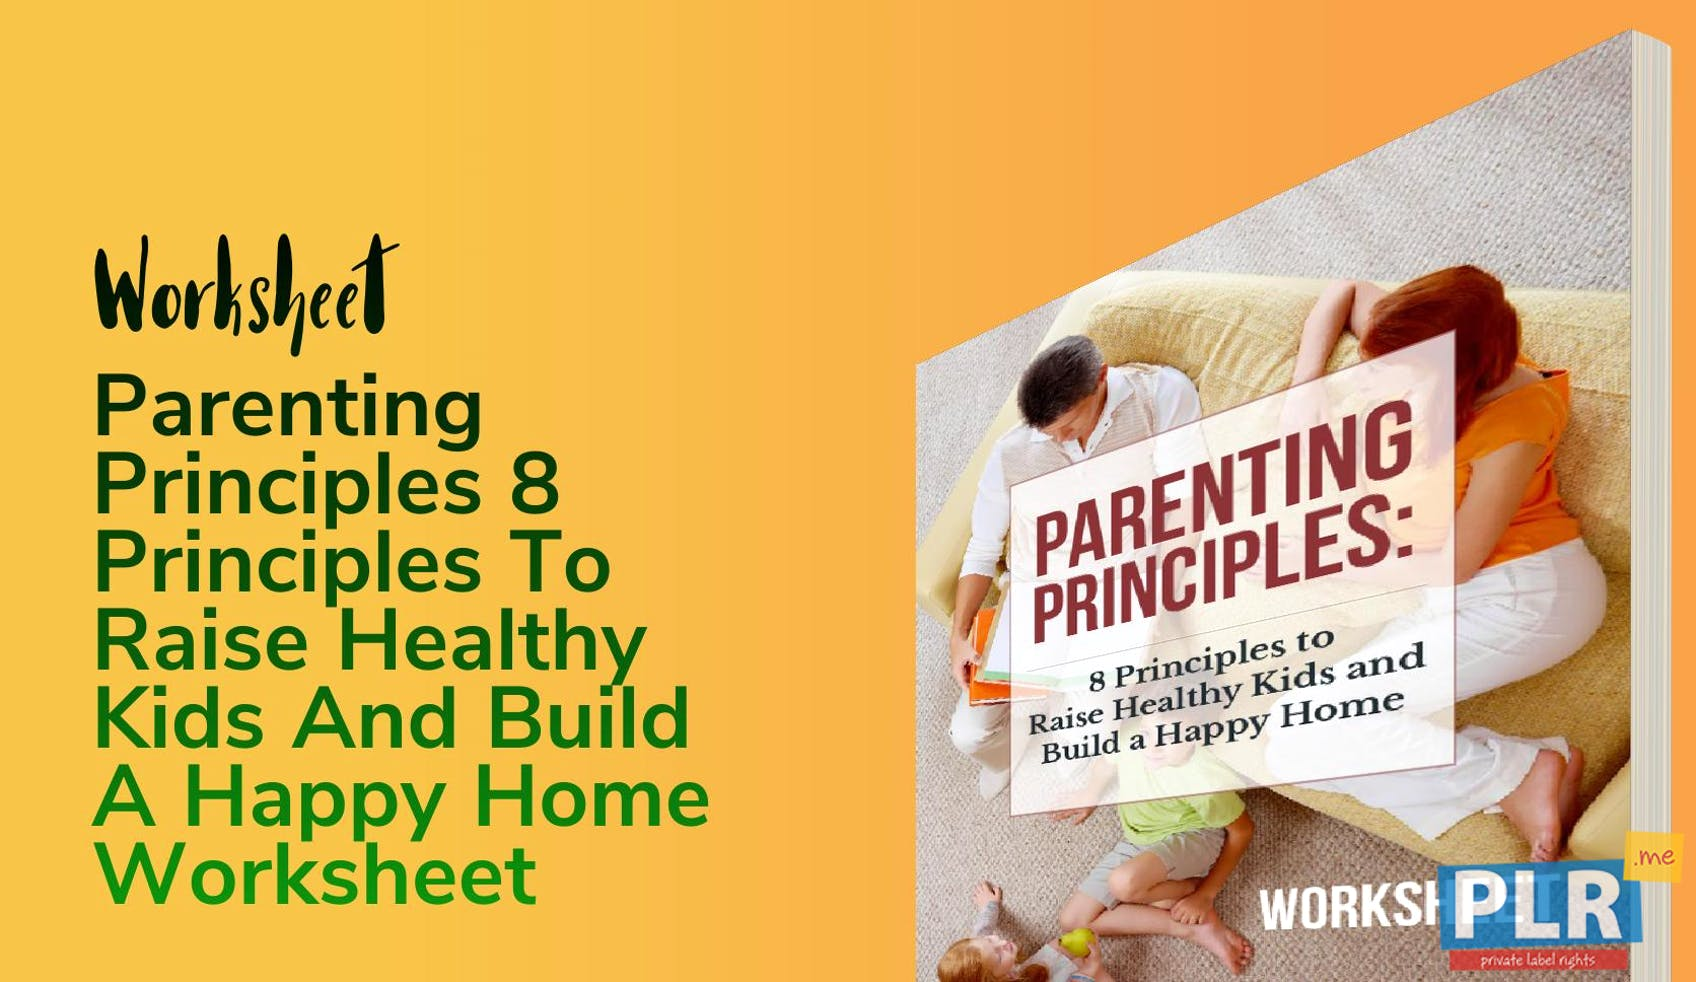 Parenting Principles 8 Principles To Raise Healthy Kids And Build A Happy Home Worksheet